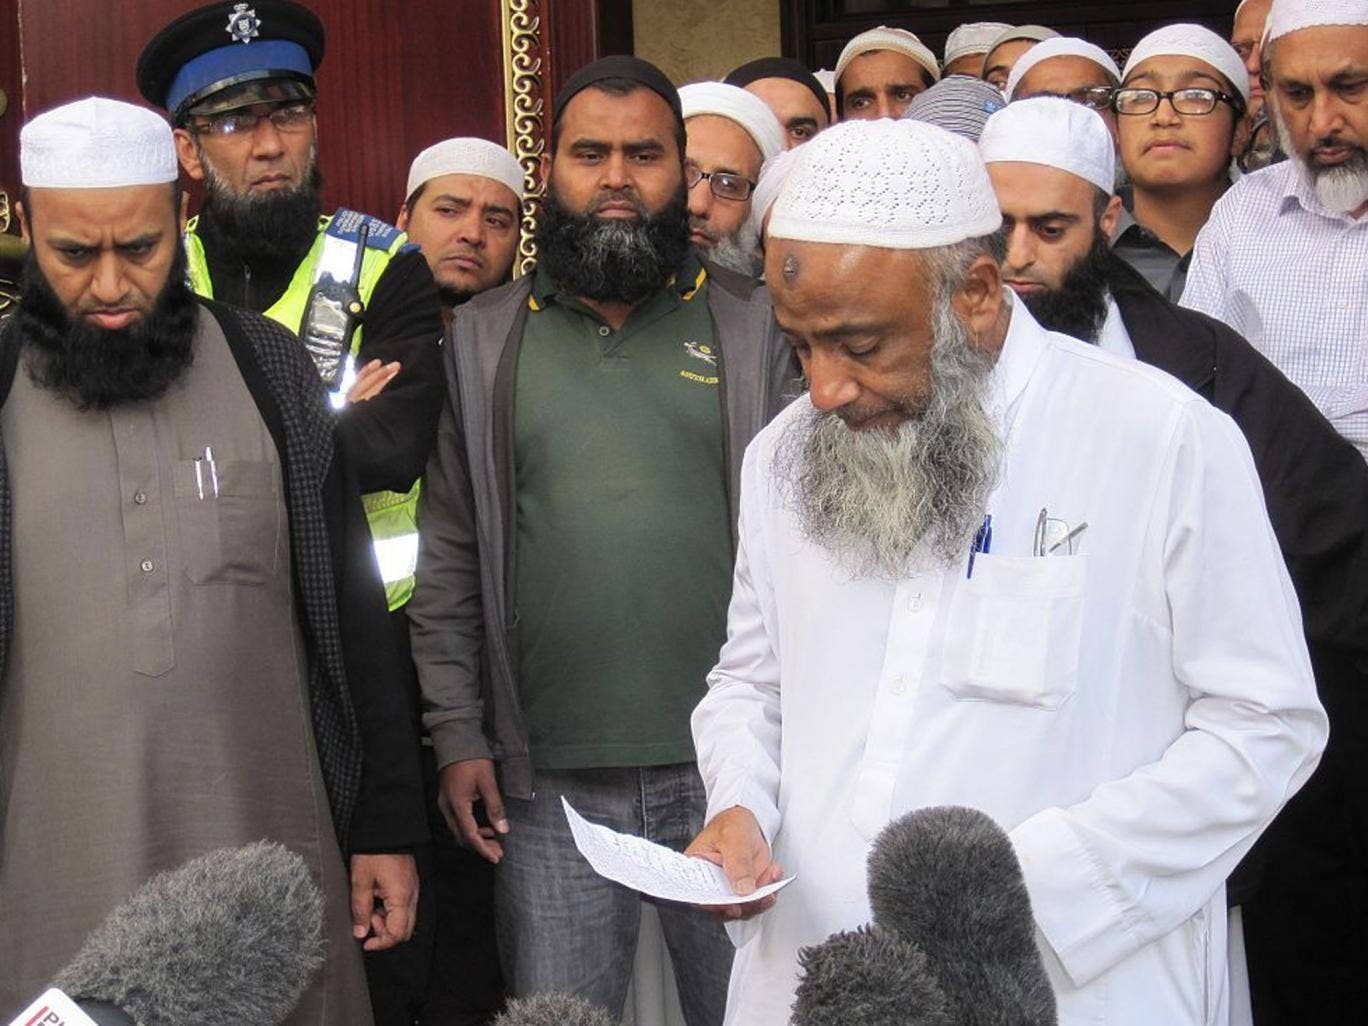 Muhammad Taufiq al-Sattar pays tribute to his wife and children who died in the fire